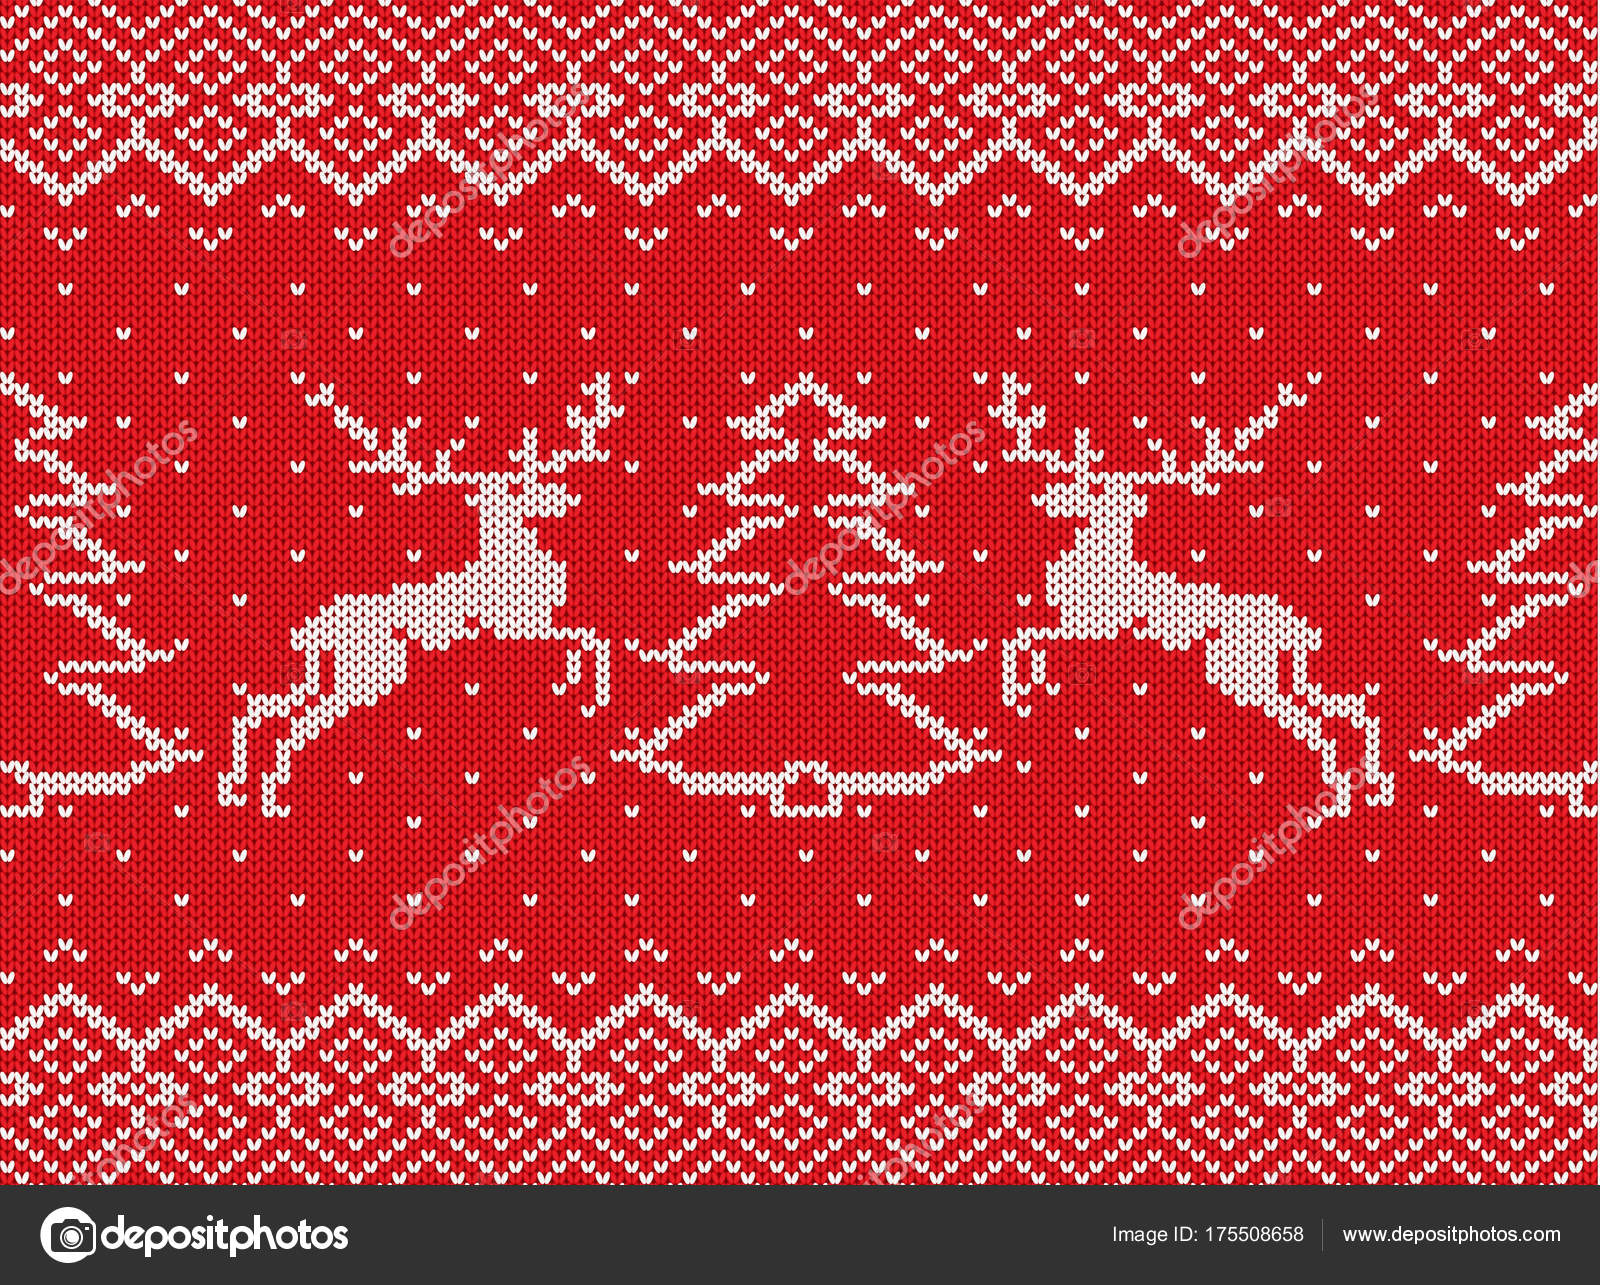 Christmas Texture.Knitted Christmas Texture With Deers Christmas Trees And